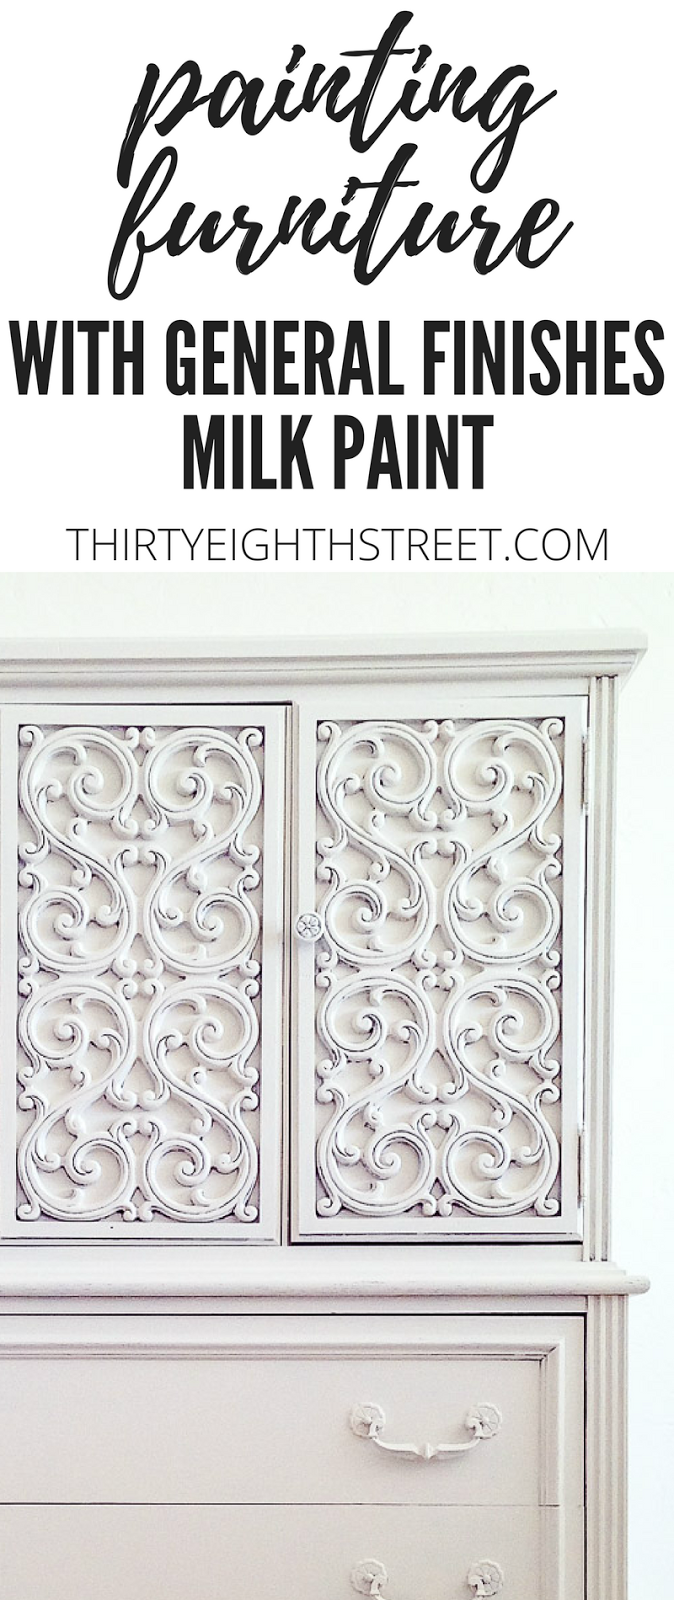 how to paint furniture with milk paint, milk paint furniture, painting with milk paint, how to paint furniture, furniture painting ideas